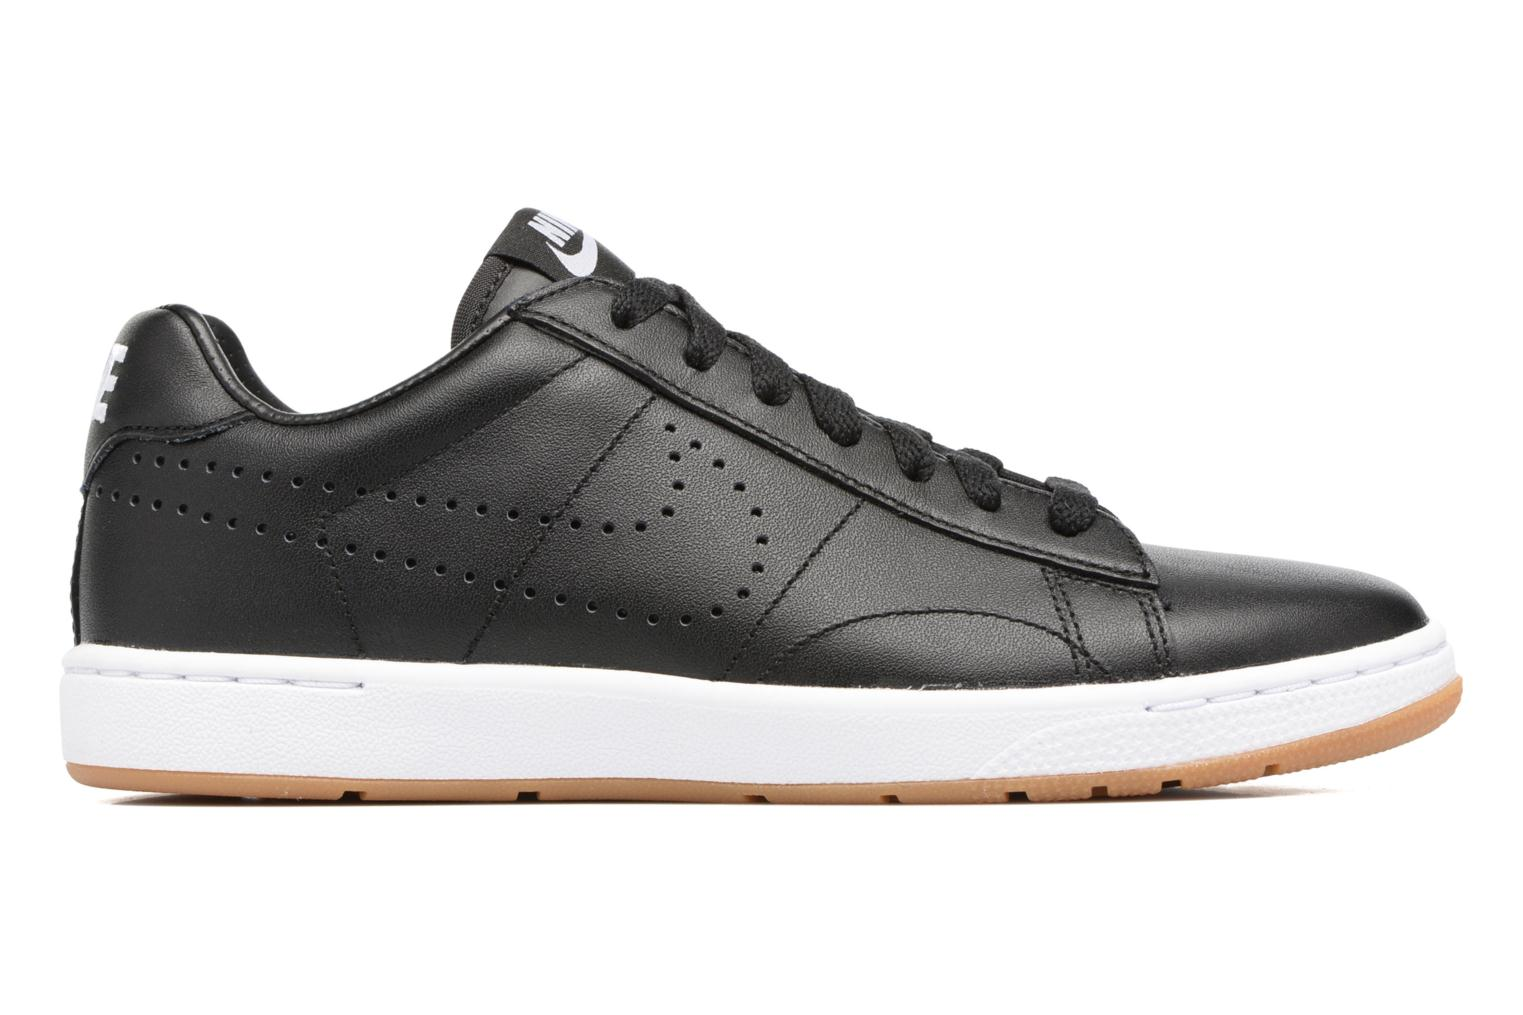 W Tennis Classic Ultra Lthr BLACK/BLACK-WHITE-GUM MED BROWN